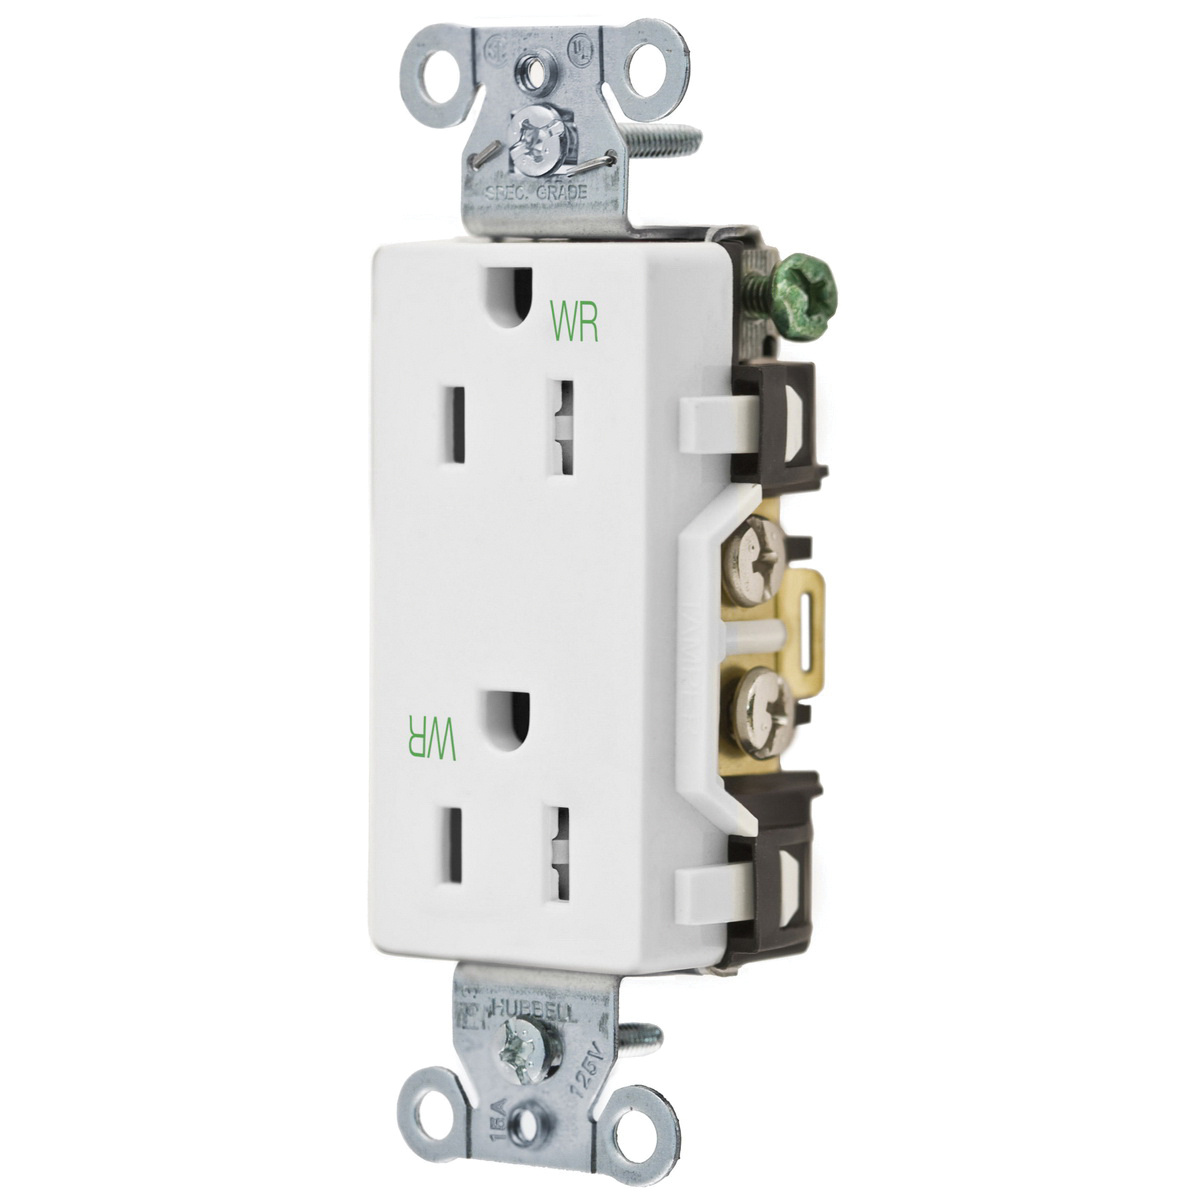 hubbell wiring dr15whiwrtr commercial industrial specification grade receptacle series or parallel hubbell wiring dr15whiwrtr commercial industrial specification grade tamper and weather resistant decorator